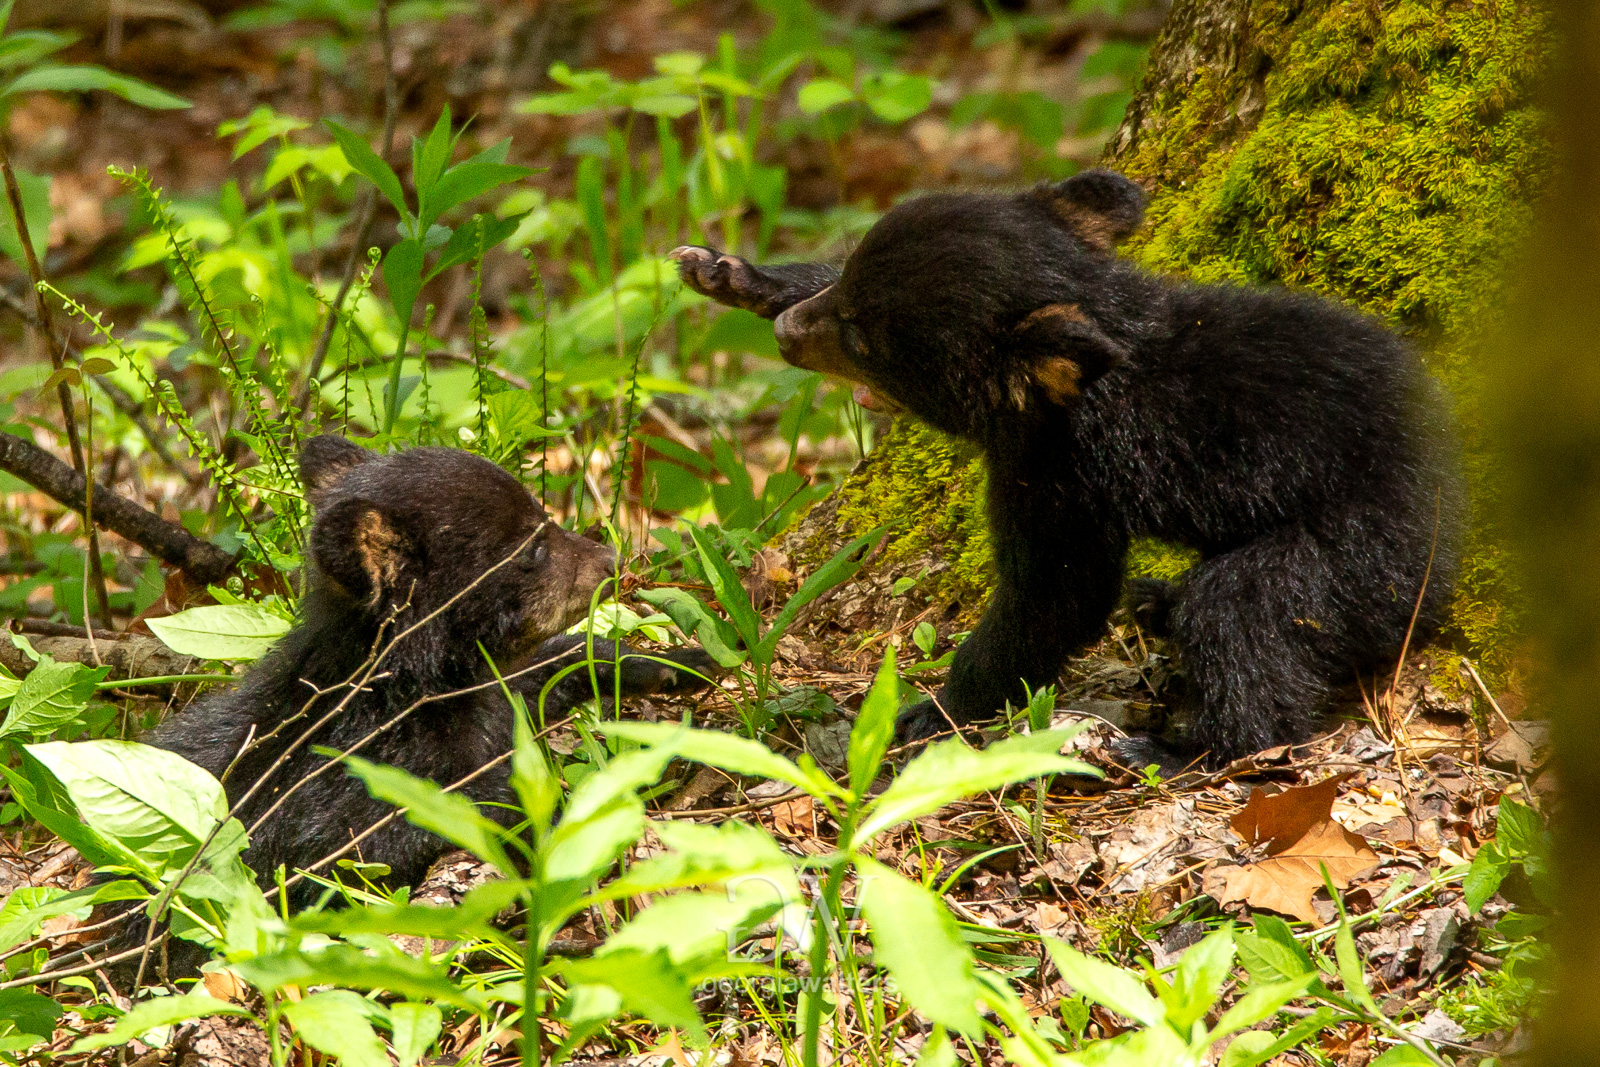 Two black bear cubs play.